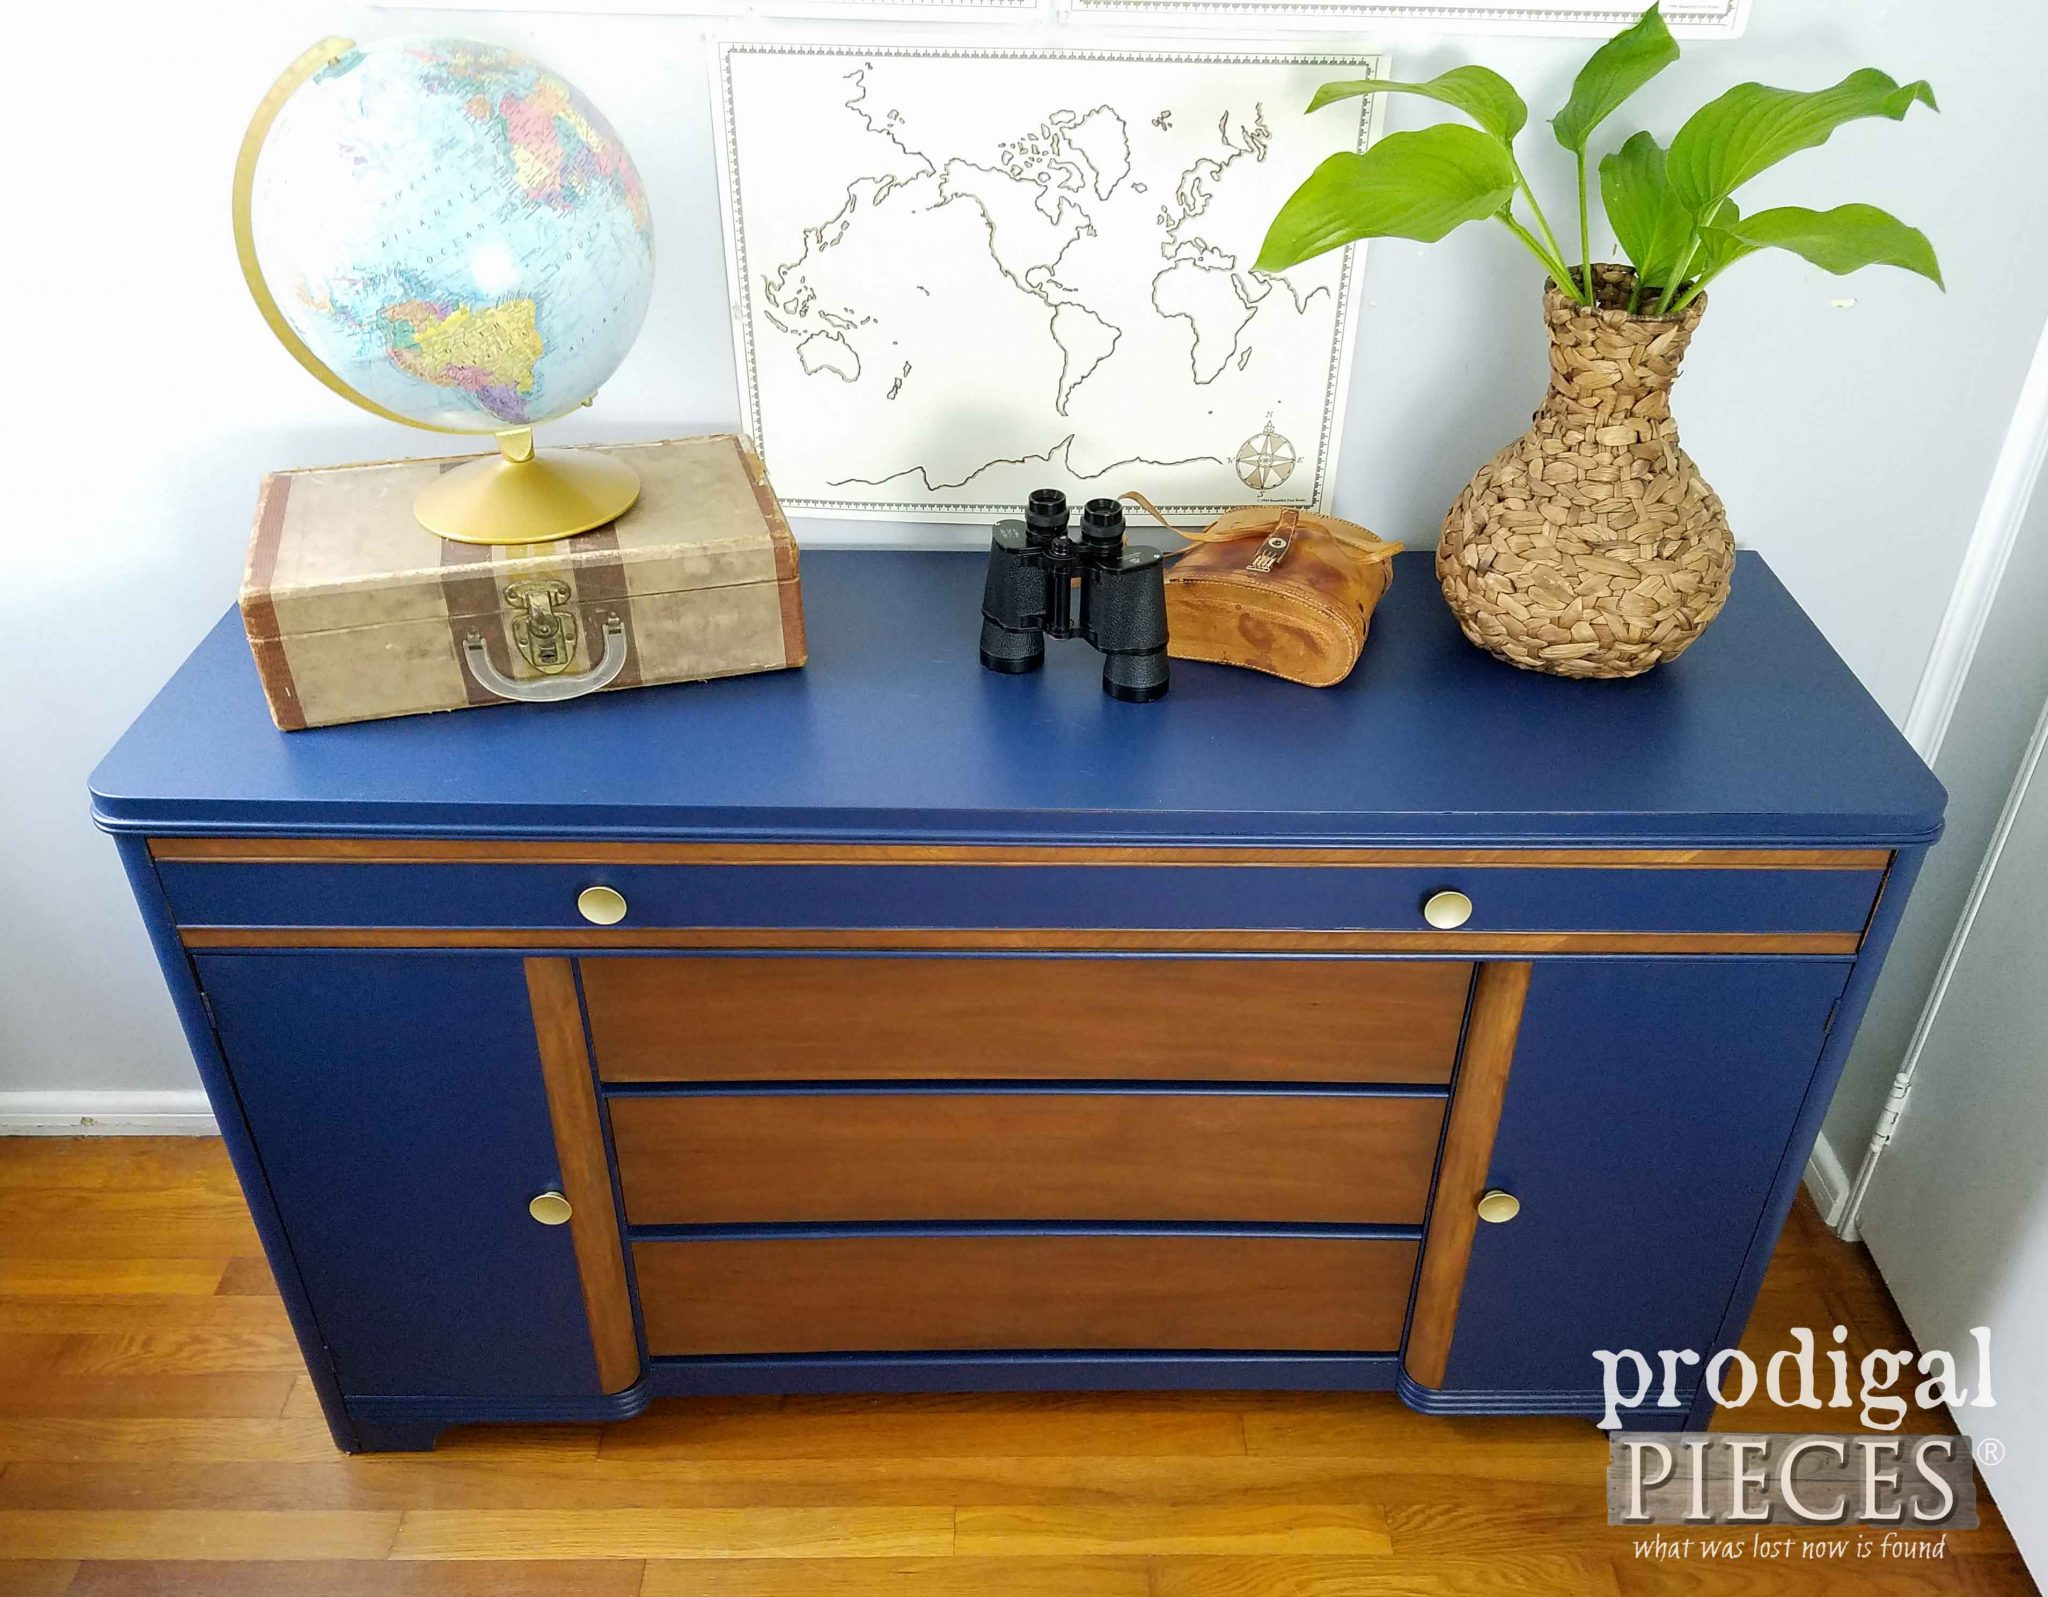 Gorgeous Blue Vintage Art Deco Buffet by Prodigal Pieces | prodigalpieces.com